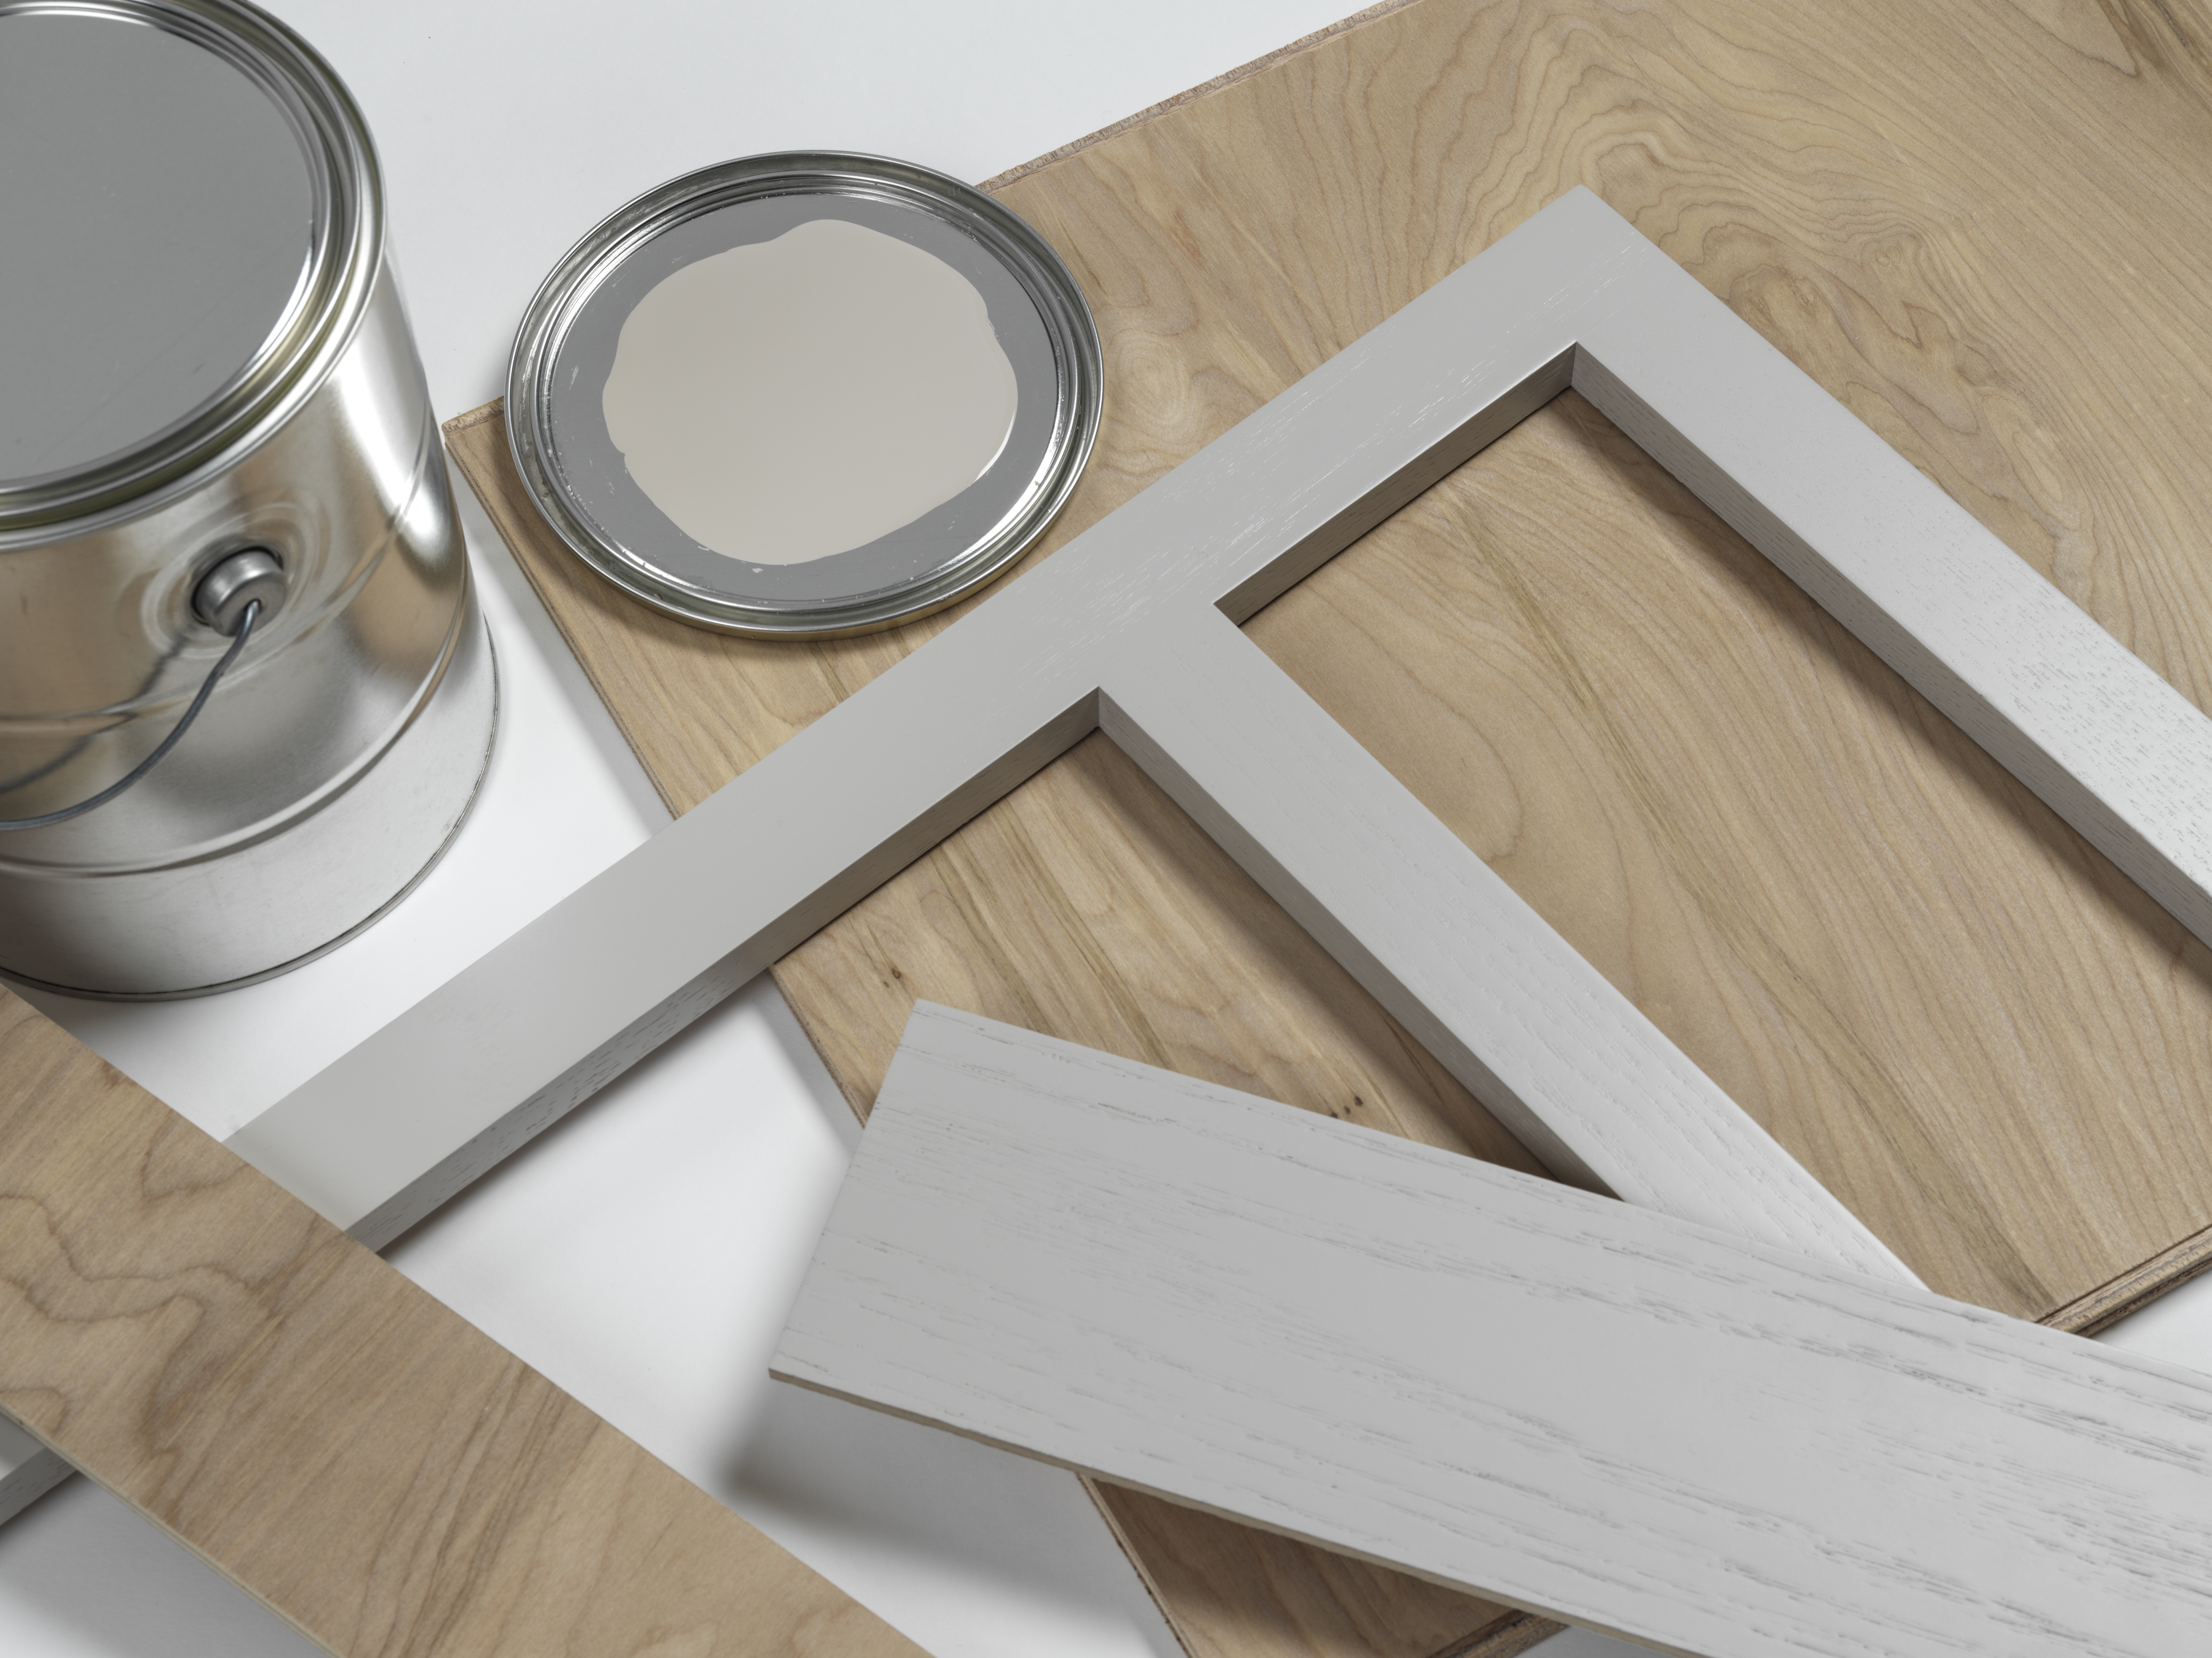 CONESTOGA WOOD'S INTRIGUE TTS LINE HAS YOUR MATCH – WITH MATCHING PAINT COLORS